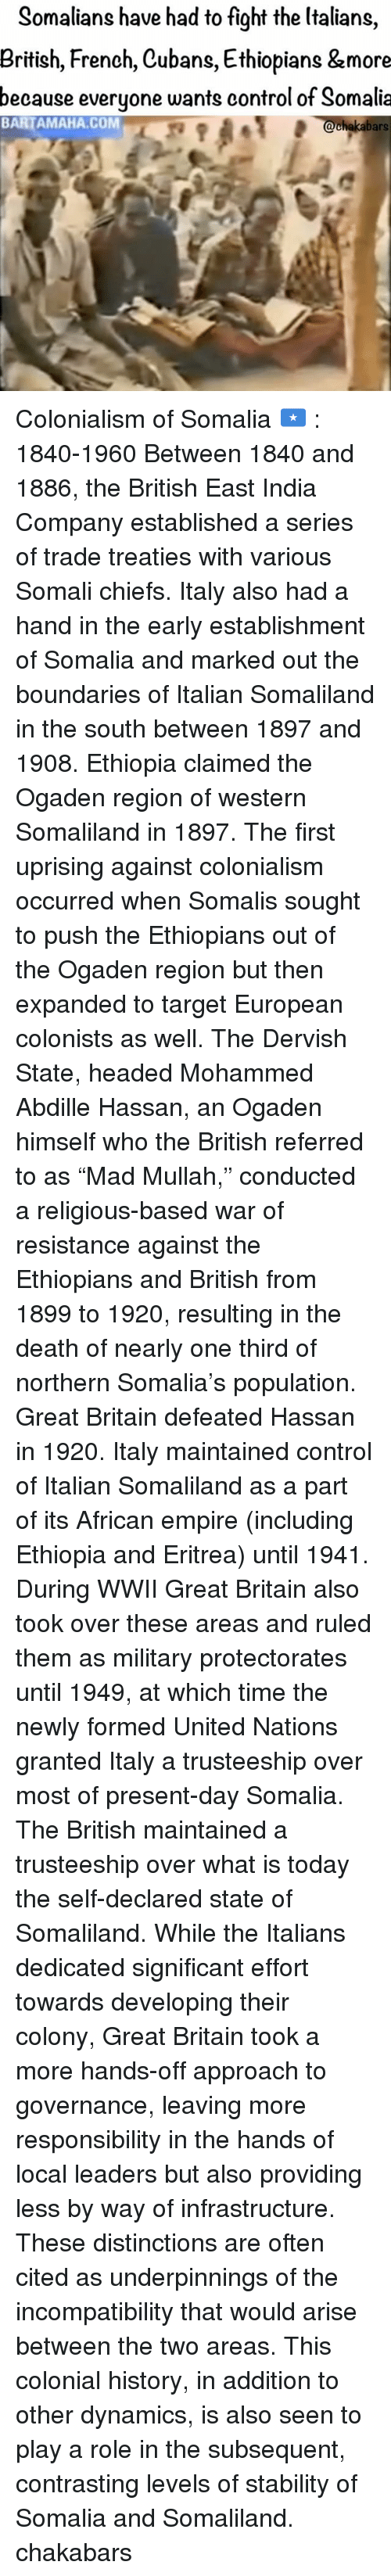 "Ethiopians: Somalians have had to fight the Italians  British, French, Cubans, Ethiopians &more  because everyone wants control of Somalia  BARTAMAHA, COM  chakabars Colonialism of Somalia 🇸🇴 : 1840-1960 Between 1840 and 1886, the British East India Company established a series of trade treaties with various Somali chiefs. Italy also had a hand in the early establishment of Somalia and marked out the boundaries of Italian Somaliland in the south between 1897 and 1908. Ethiopia claimed the Ogaden region of western Somaliland in 1897. The first uprising against colonialism occurred when Somalis sought to push the Ethiopians out of the Ogaden region but then expanded to target European colonists as well. The Dervish State, headed Mohammed Abdille Hassan, an Ogaden himself who the British referred to as ""Mad Mullah,"" conducted a religious-based war of resistance against the Ethiopians and British from 1899 to 1920, resulting in the death of nearly one third of northern Somalia's population. Great Britain defeated Hassan in 1920. Italy maintained control of Italian Somaliland as a part of its African empire (including Ethiopia and Eritrea) until 1941. During WWII Great Britain also took over these areas and ruled them as military protectorates until 1949, at which time the newly formed United Nations granted Italy a trusteeship over most of present-day Somalia. The British maintained a trusteeship over what is today the self-declared state of Somaliland. While the Italians dedicated significant effort towards developing their colony, Great Britain took a more hands-off approach to governance, leaving more responsibility in the hands of local leaders but also providing less by way of infrastructure. These distinctions are often cited as underpinnings of the incompatibility that would arise between the two areas. This colonial history, in addition to other dynamics, is also seen to play a role in the subsequent, contrasting levels of stability of Somalia and Somaliland. chakabars"